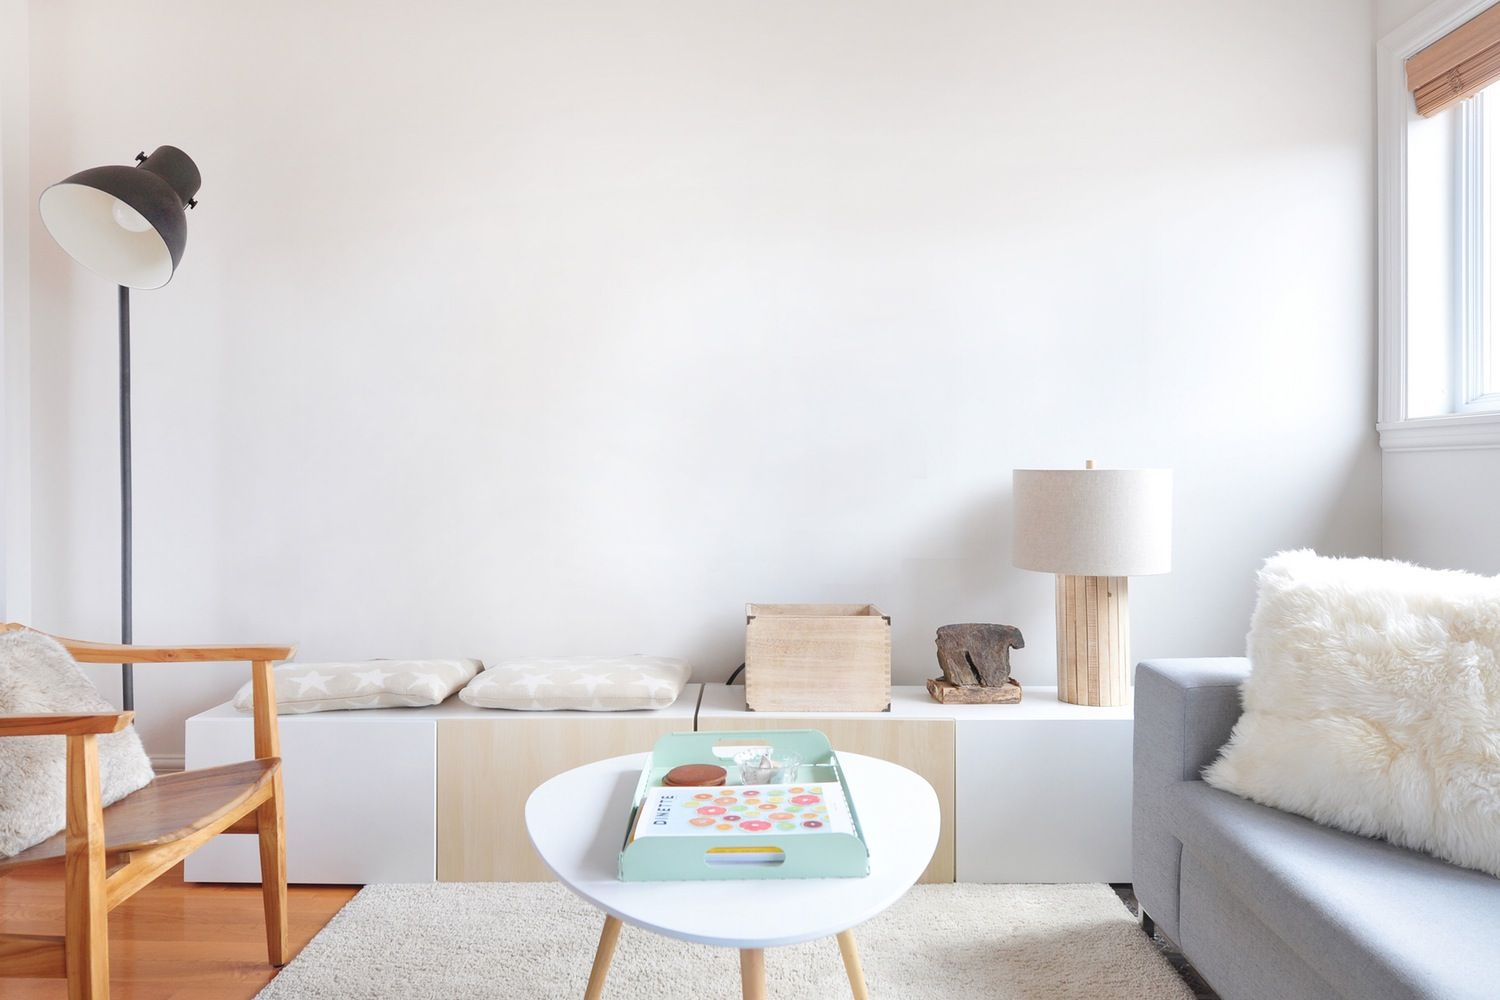 5 Gifs That Might Help You Figure Out What To Do With That Blank Wall Wall Paint Colors Wall Color Creative Home Decor Minimalist room colors gif